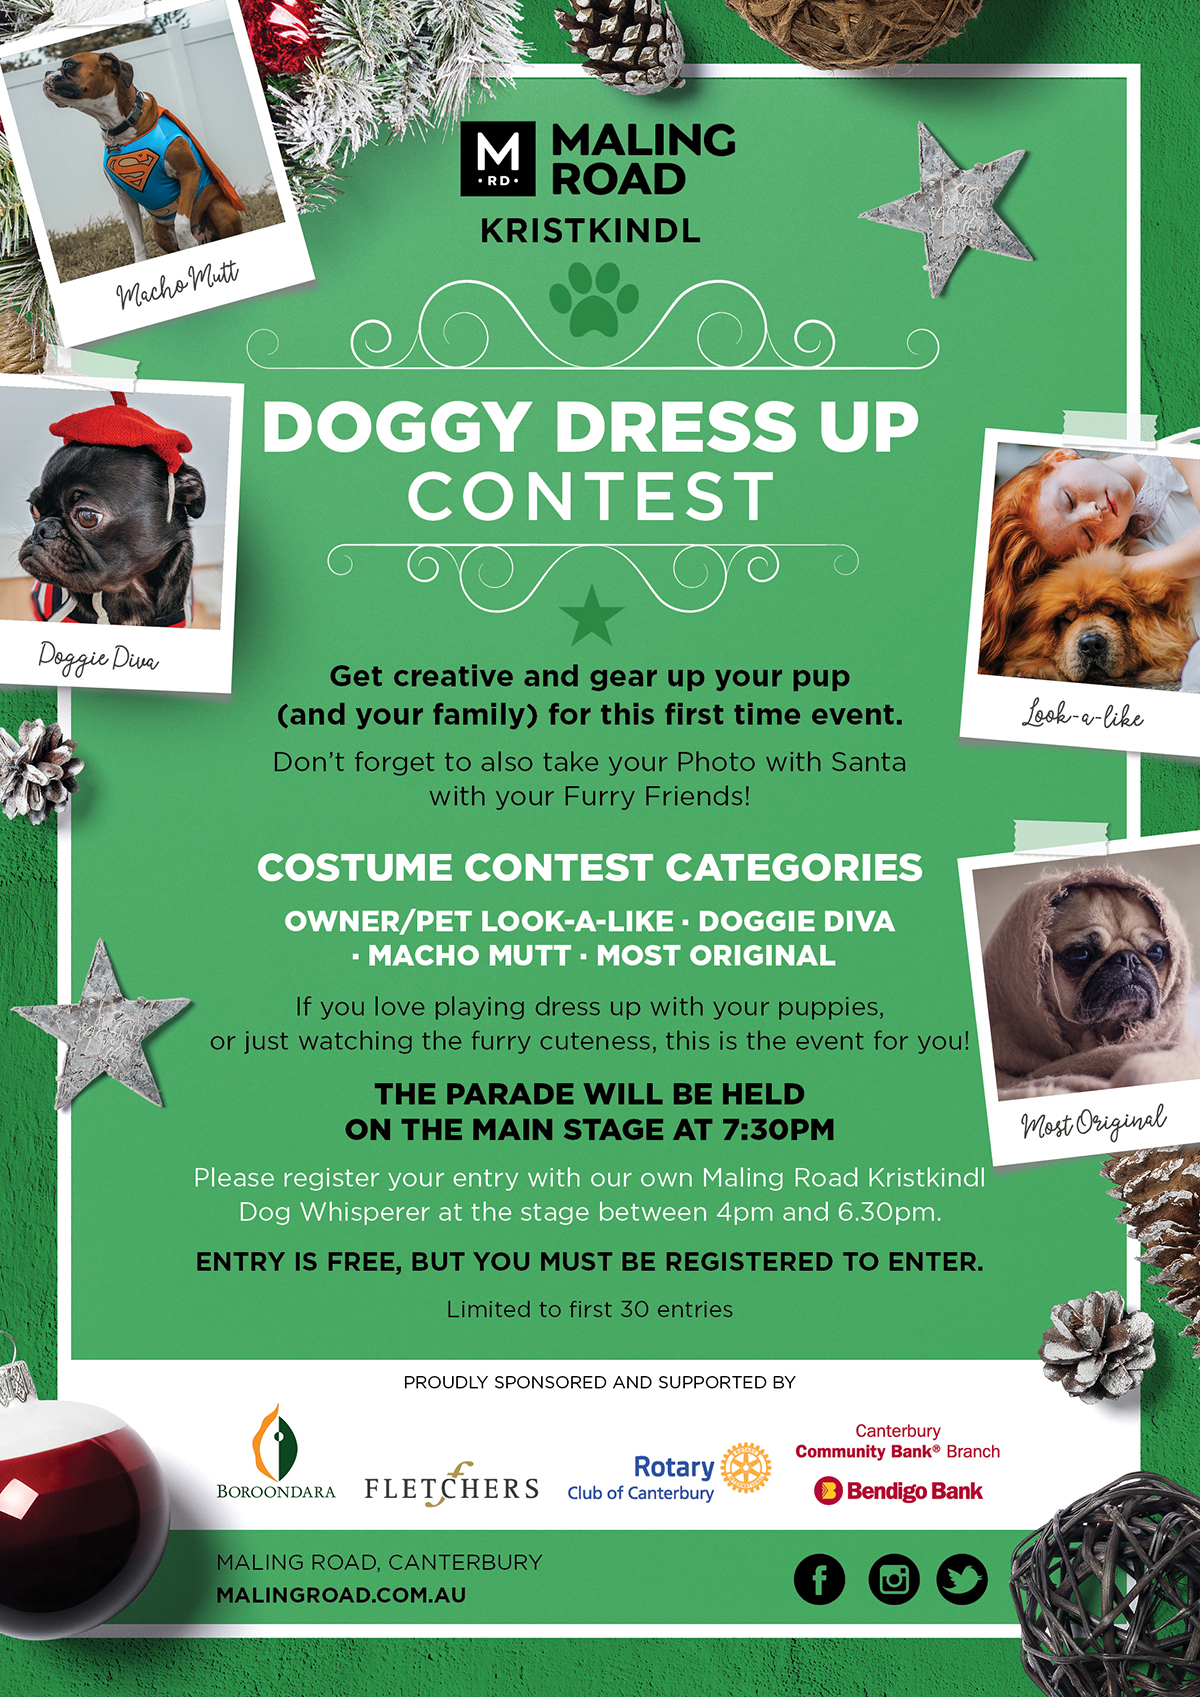 Doggy Dress Up Contest Maling Road